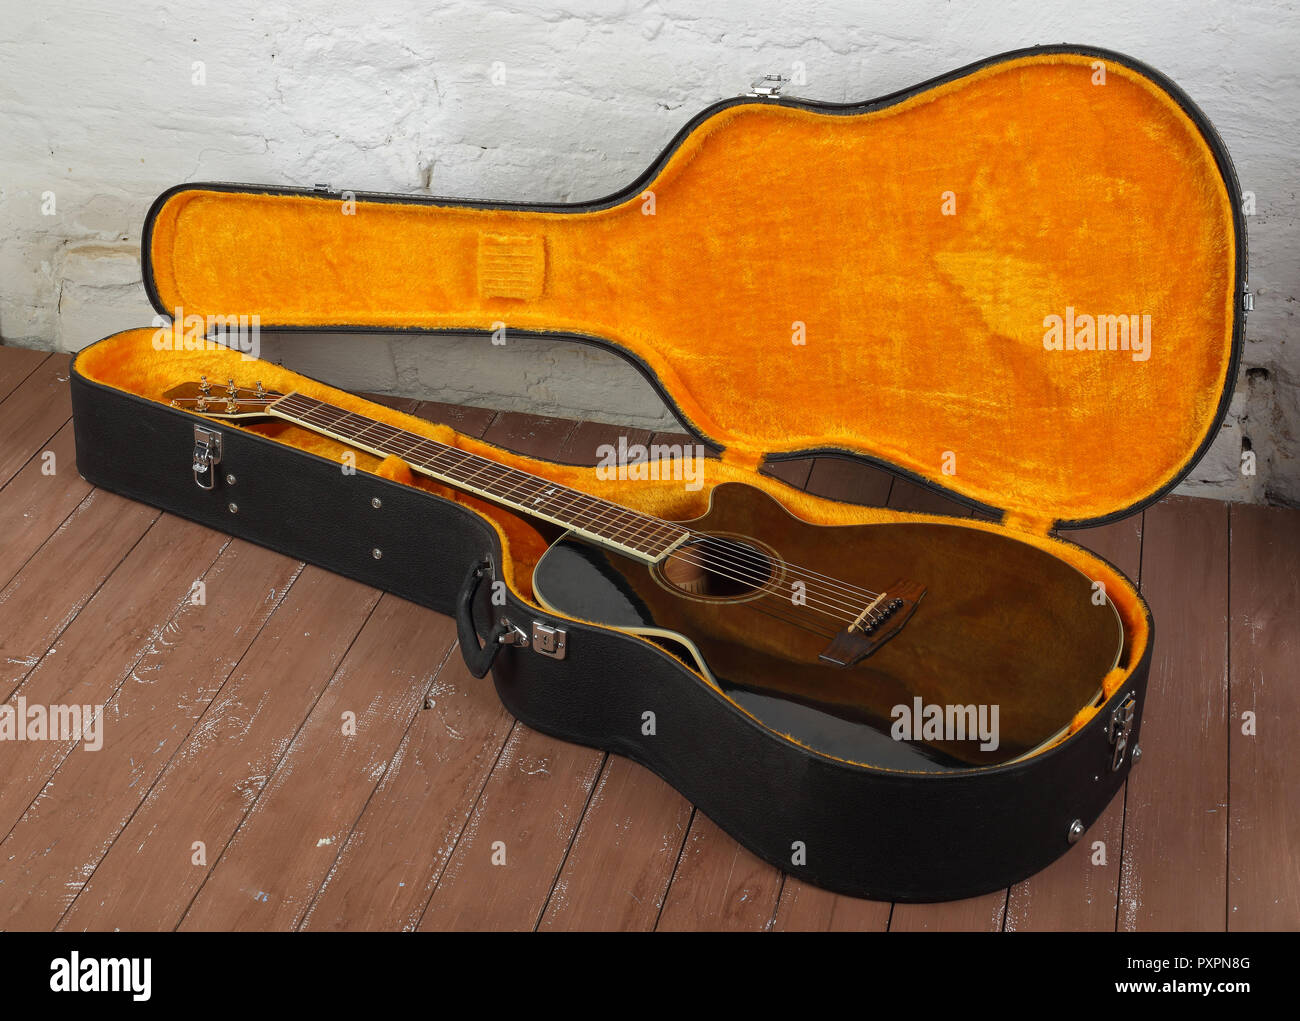 Musical instrument - brown cutaway acoustic guitar in hard case on a wood background. Stock Photo